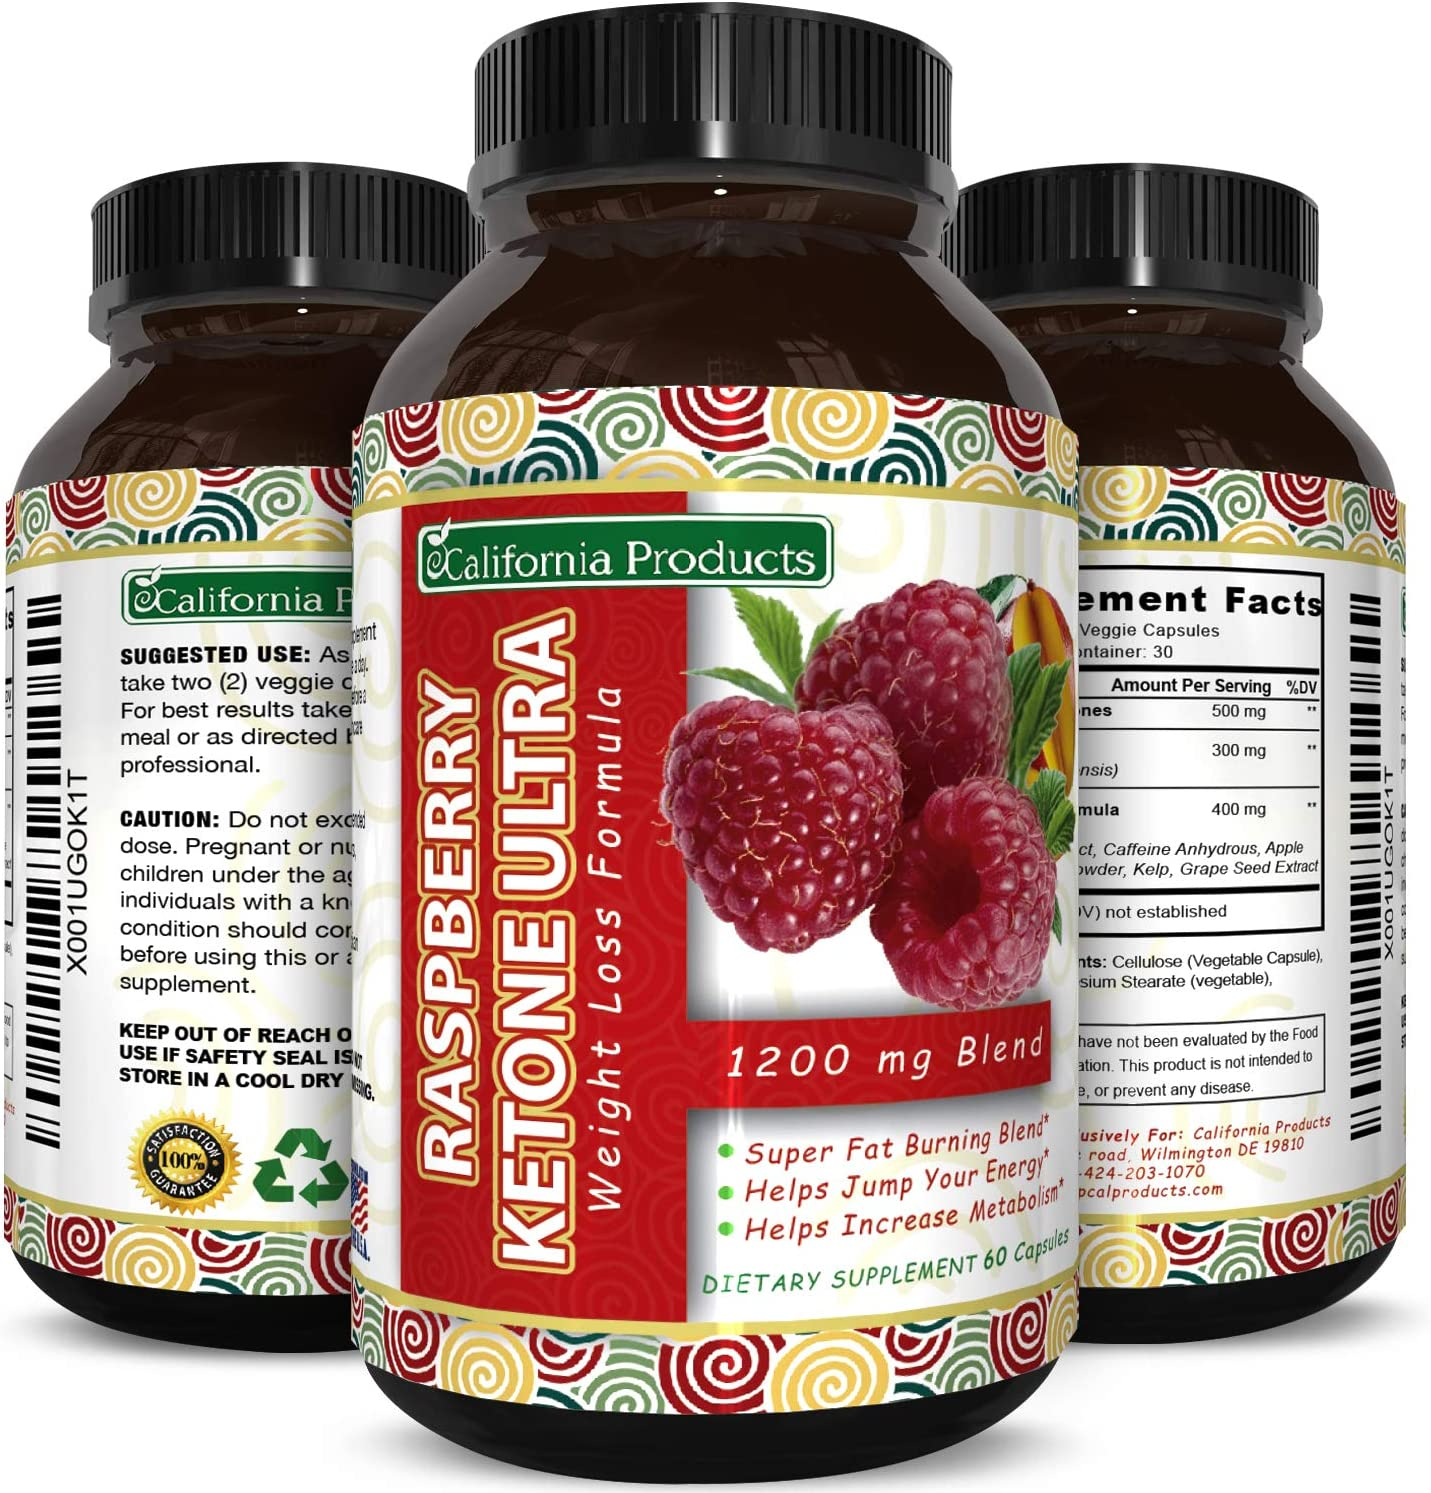 Blend Of Raspberry Ketones, Green Tea Extract And African Mango, Lose Weight Faster with Natural Ingredients To Speed Up Weight Loss, Suppress Appetite Burn Fat, 60 Capsules